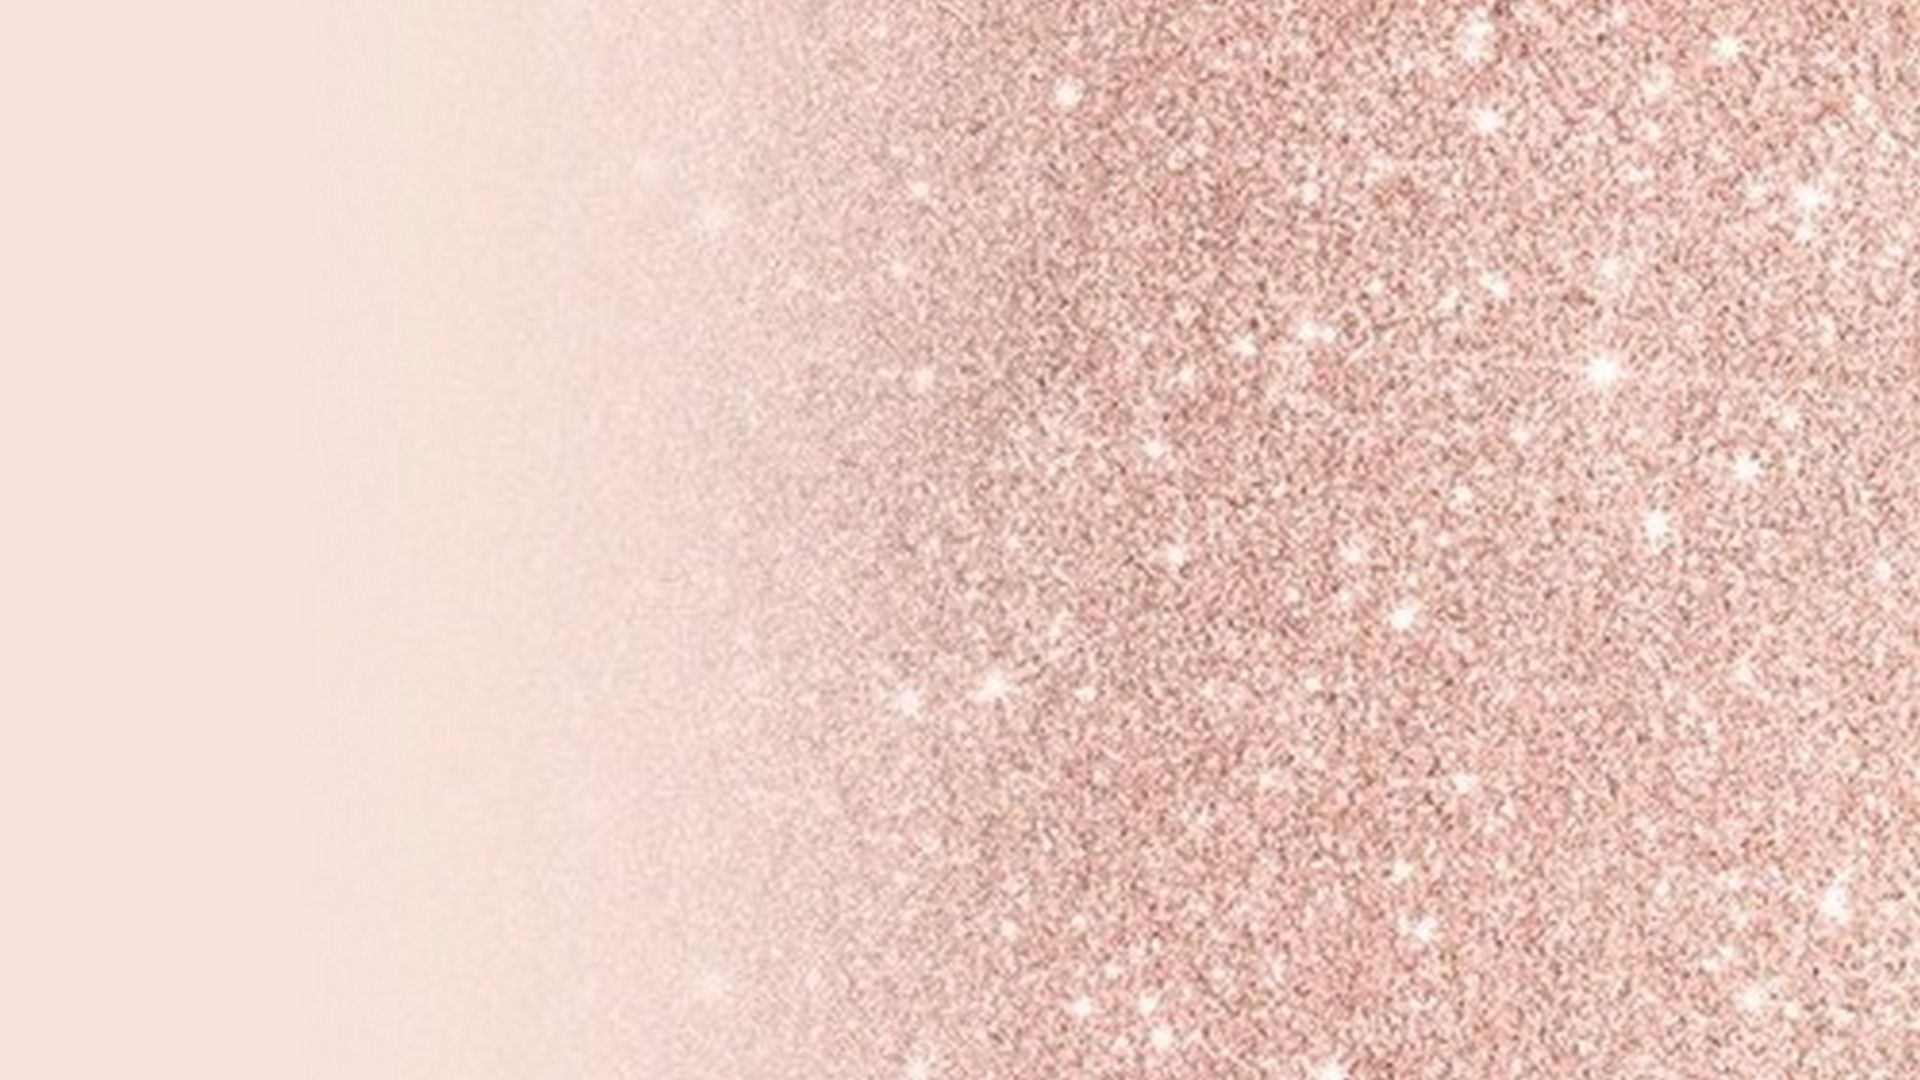 Rose Gold Wallpaper Abstract Pattern Old In 2020 Rose Gold Glitter Wallpaper Rose Gold Aesthetic Rose Gold Wallpaper